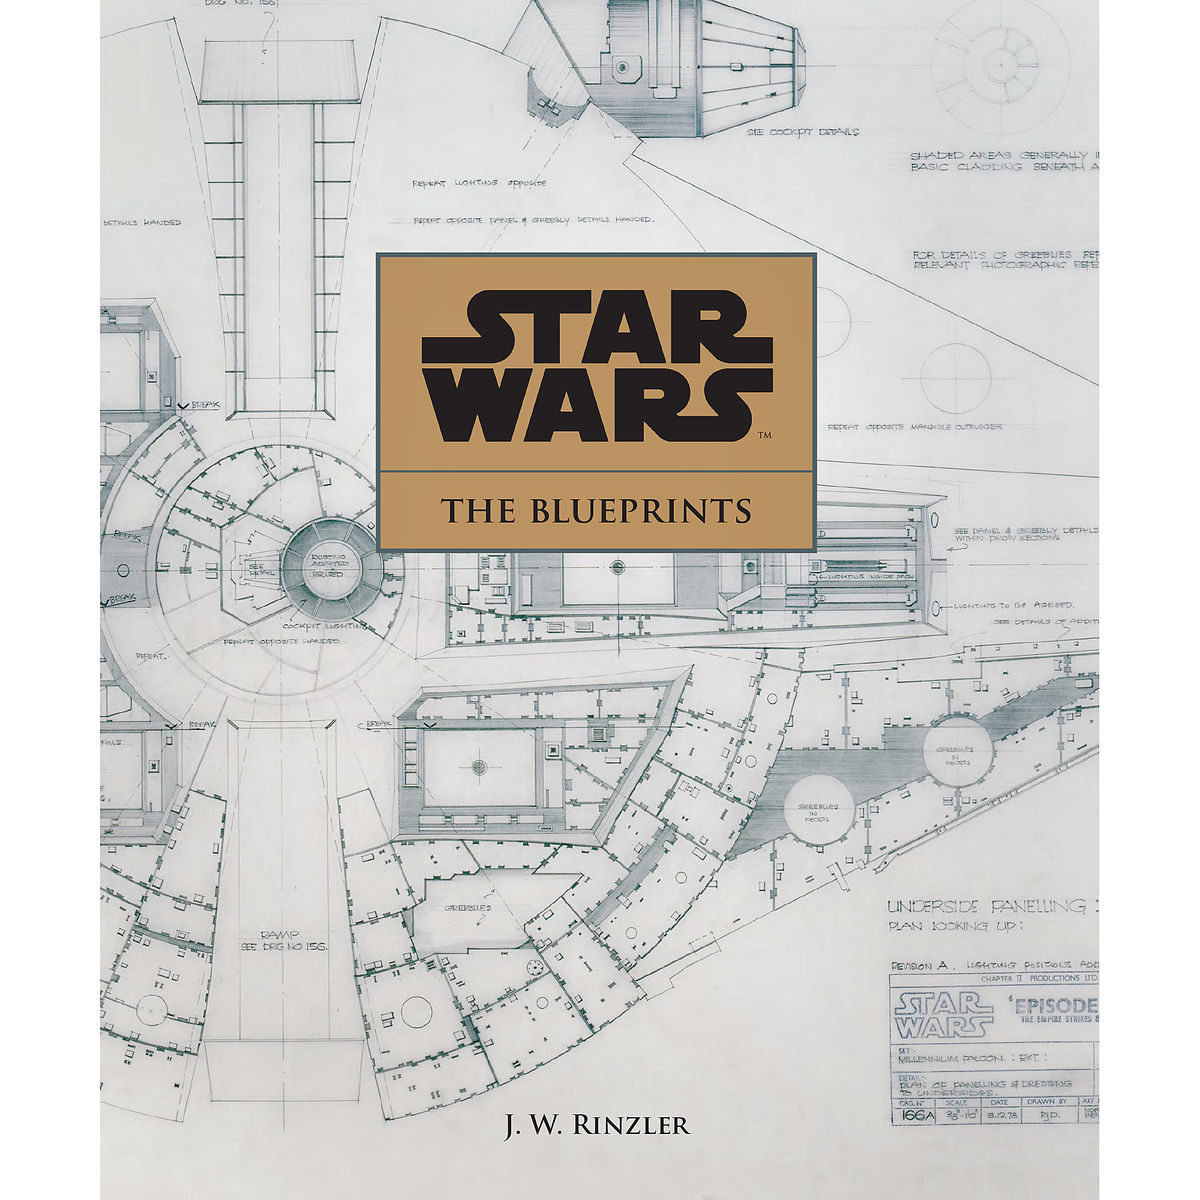 Star wars the blueprints book shopdisney product image of star wars the blueprints book 1 malvernweather Image collections